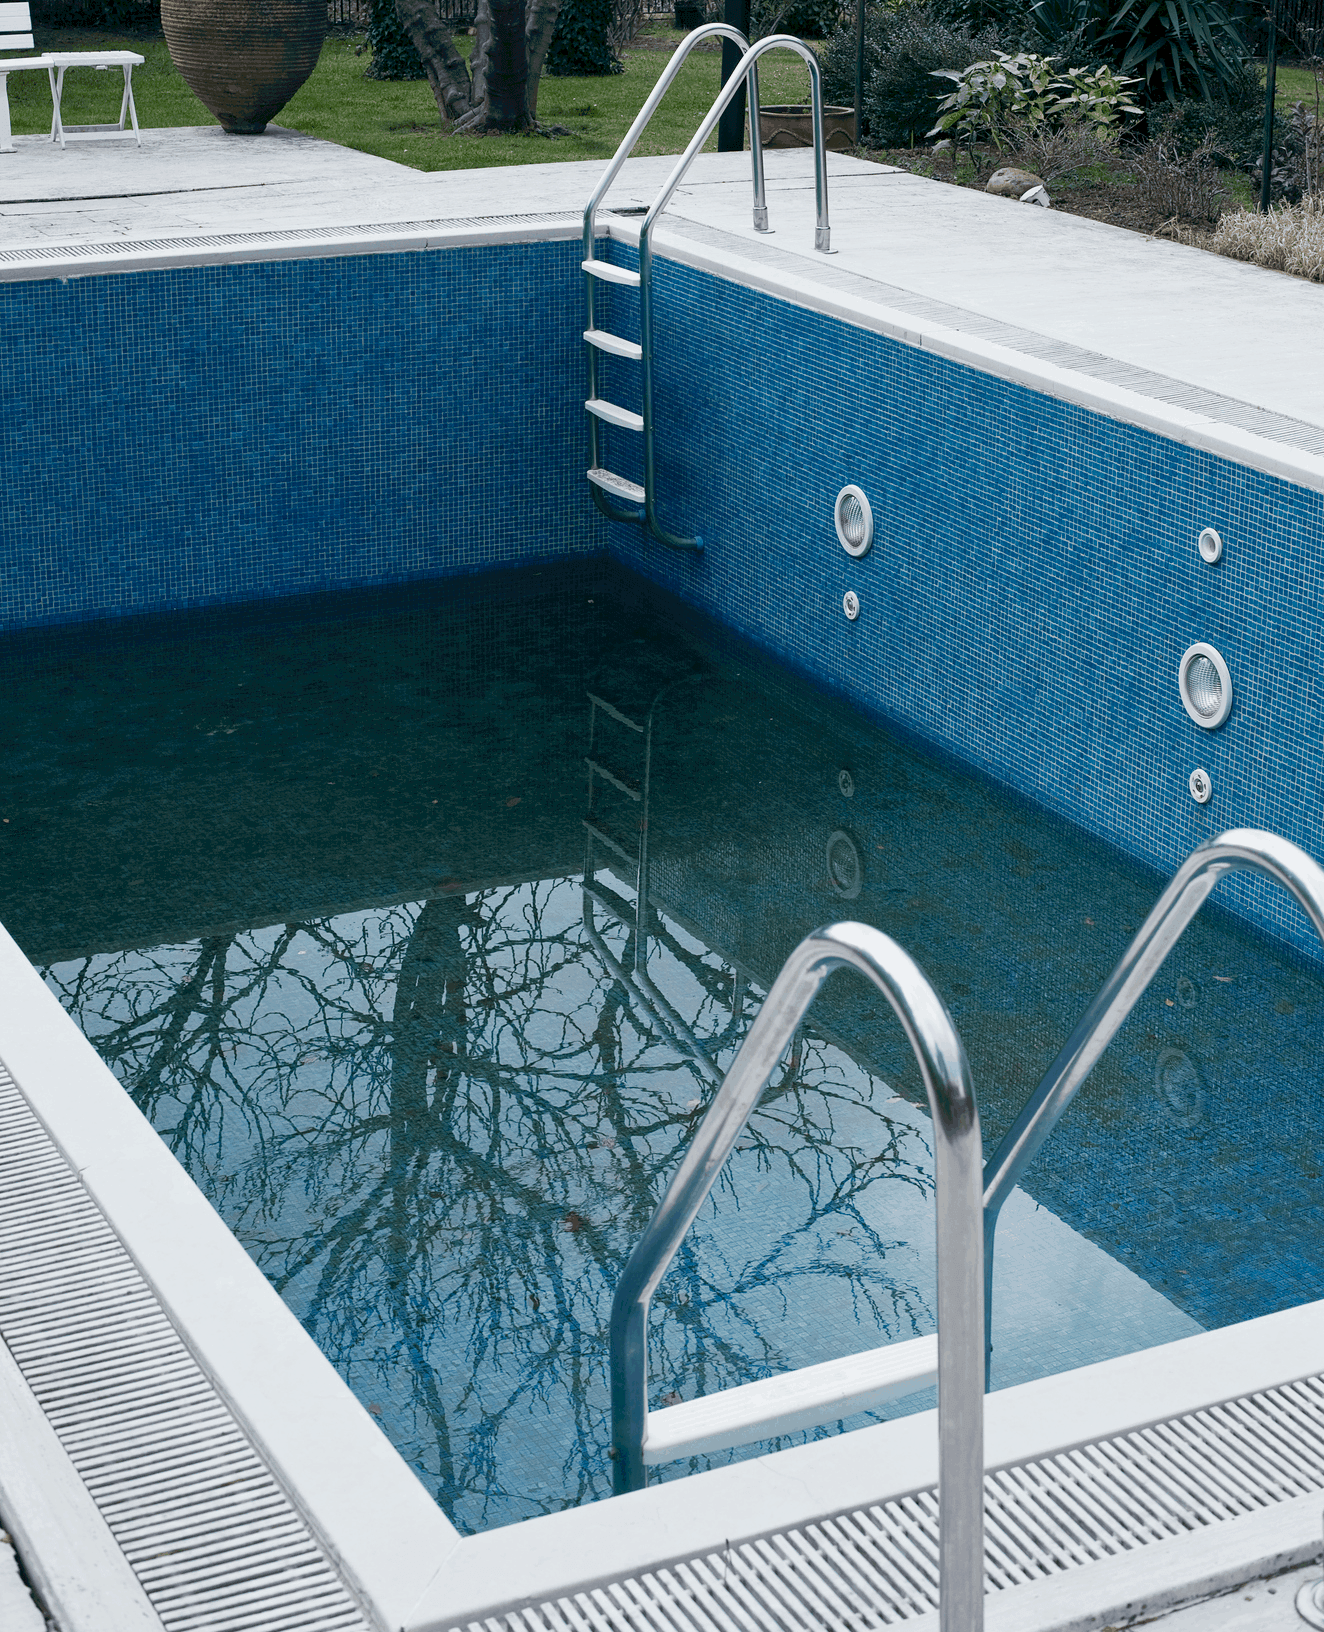 Pool leak detection Cranbourne South